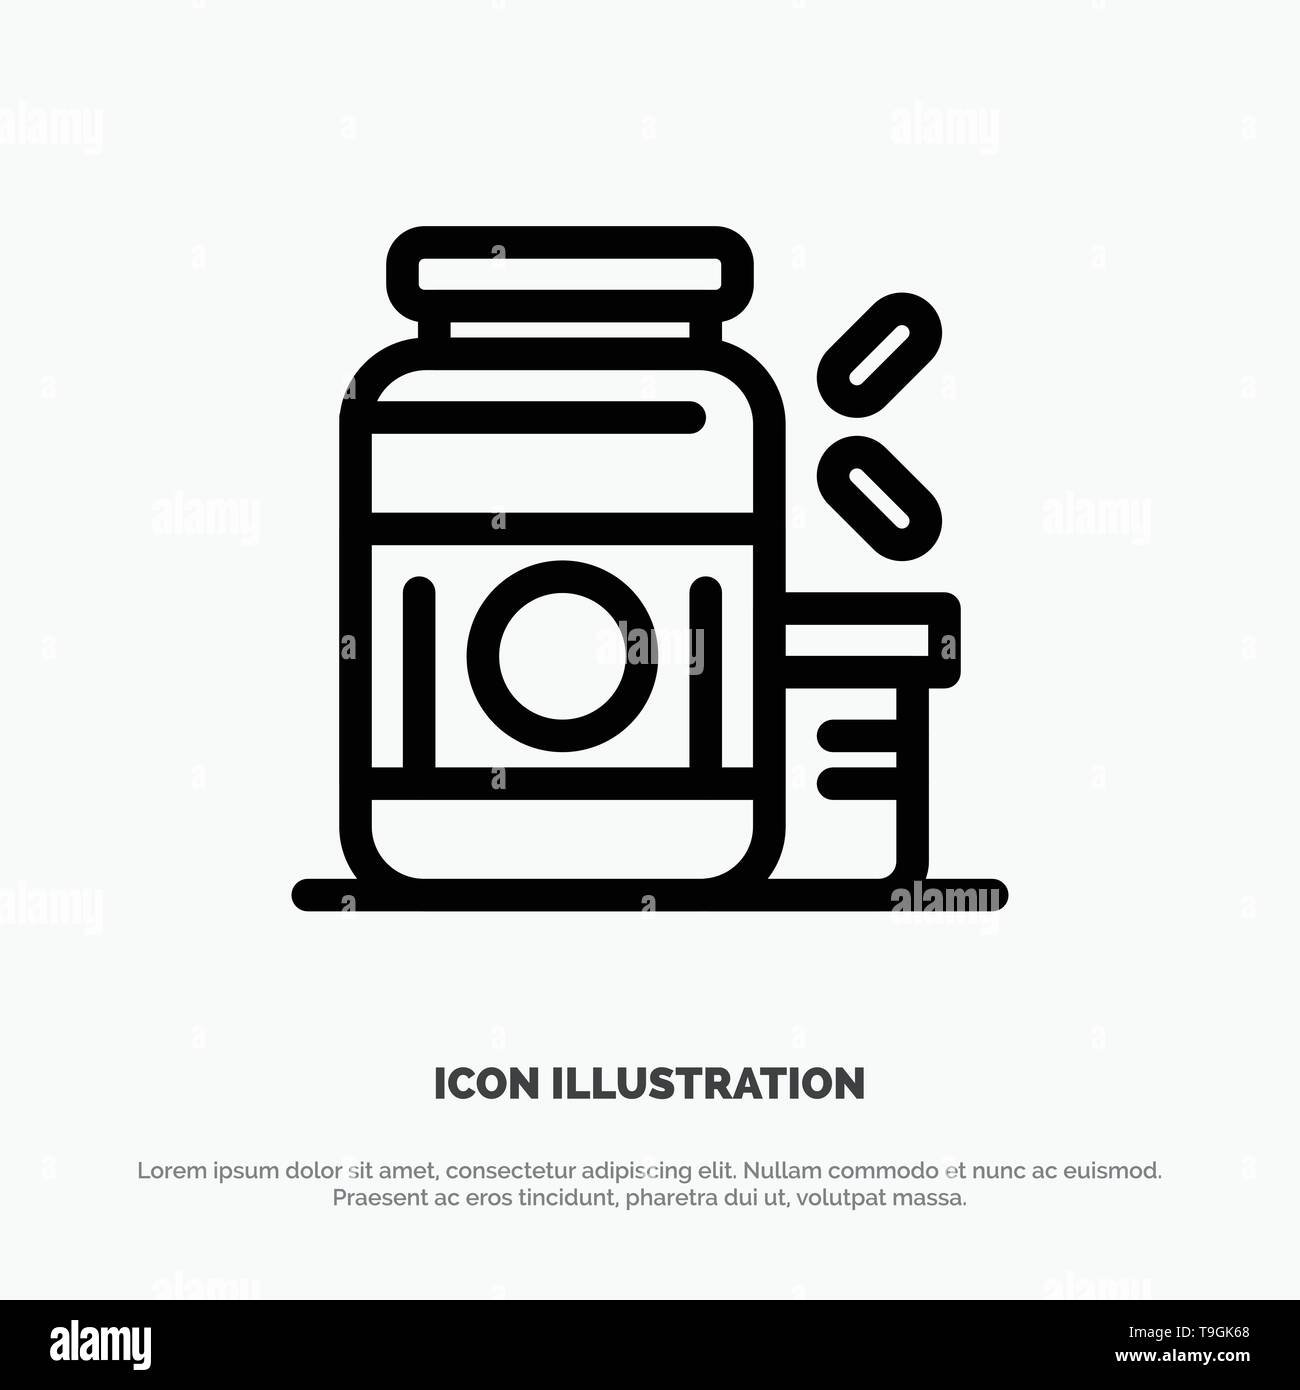 Bodybuilding, Gainer, Protein, Sports, Supplement Line Icon Vector - Stock Image